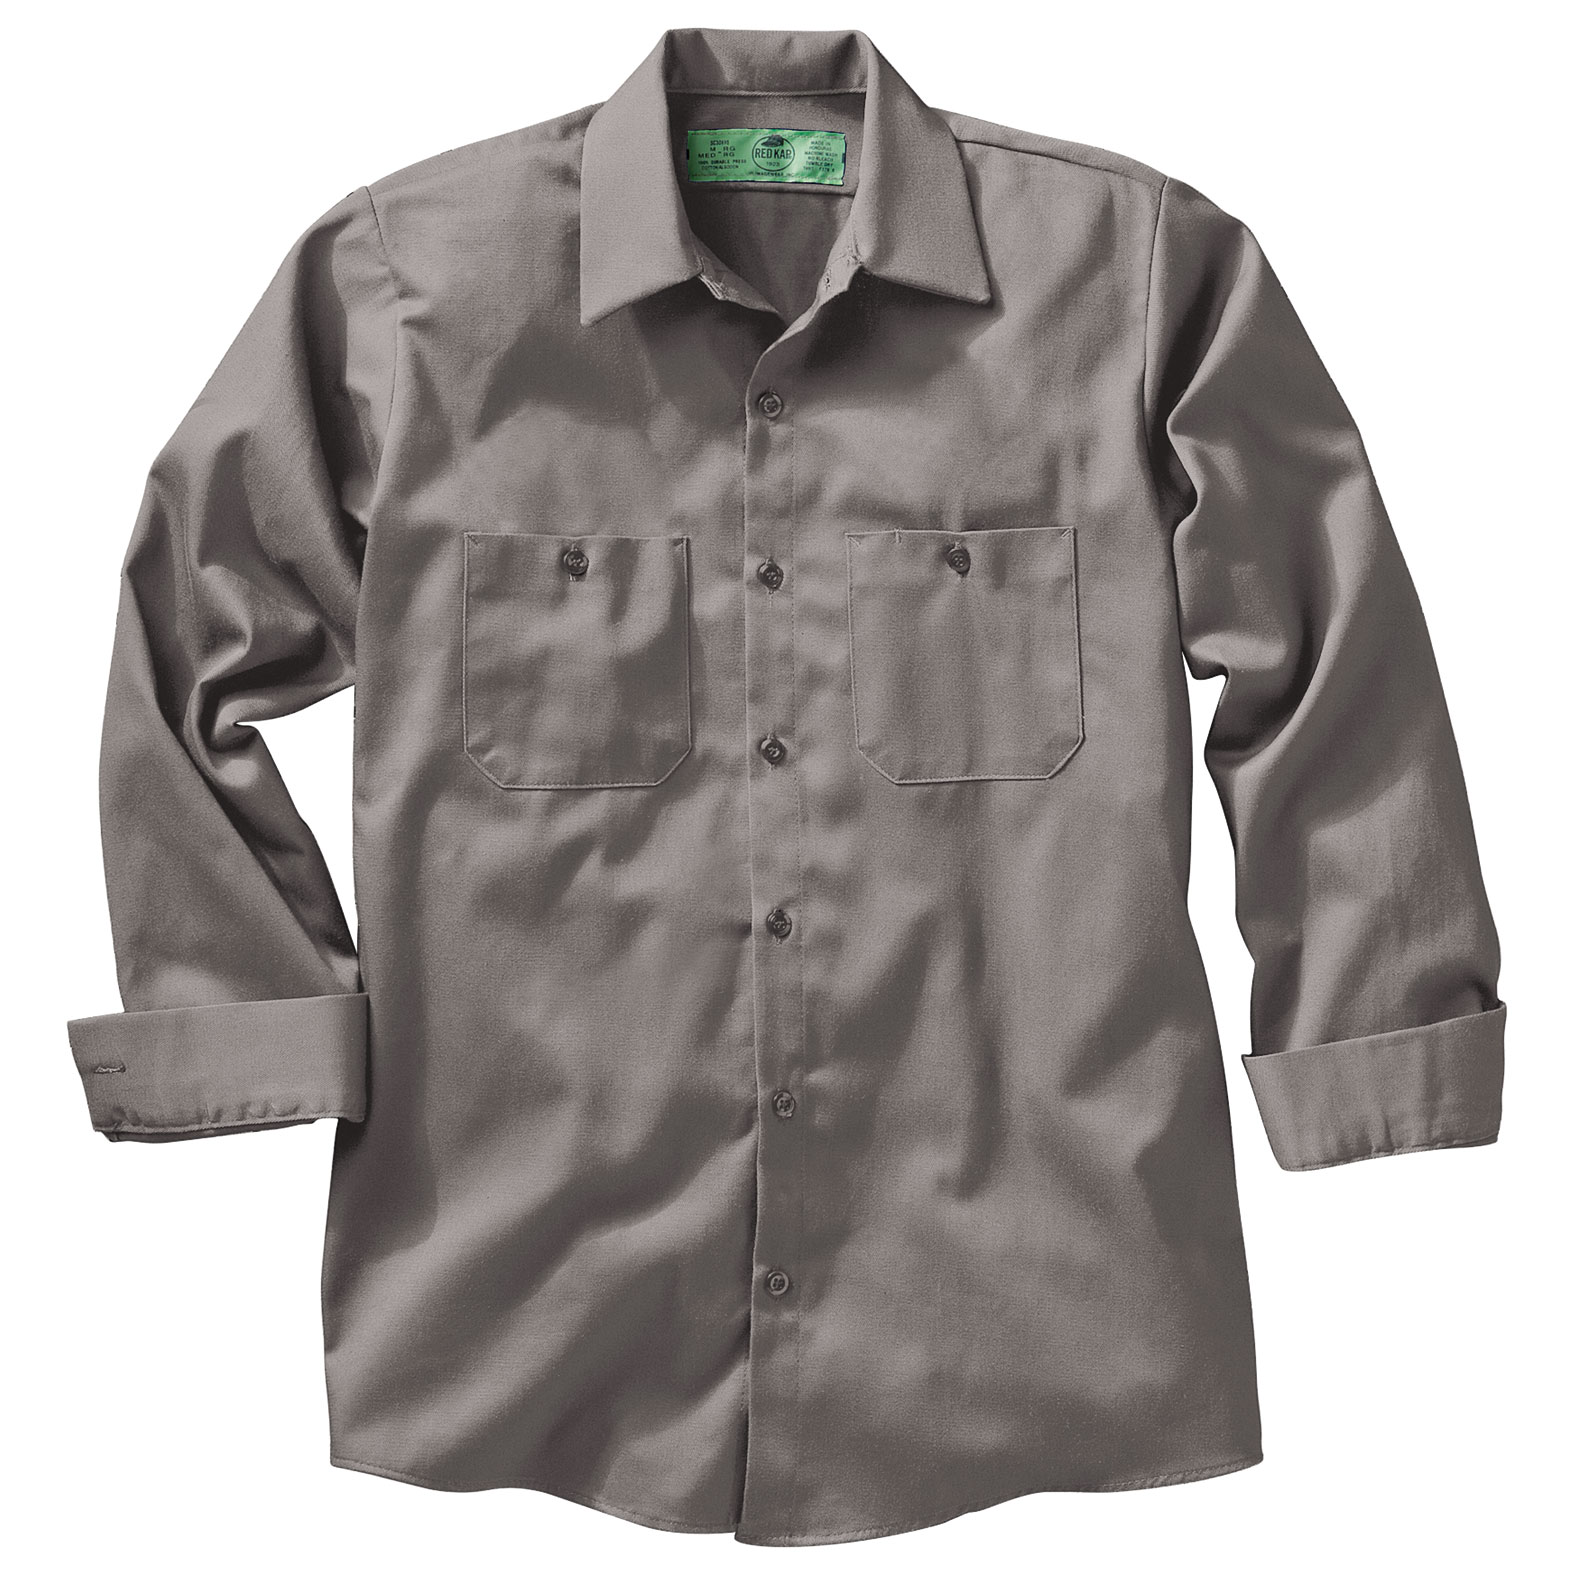 Mens 100% Cotton Long Sleeve Uniform Shirt